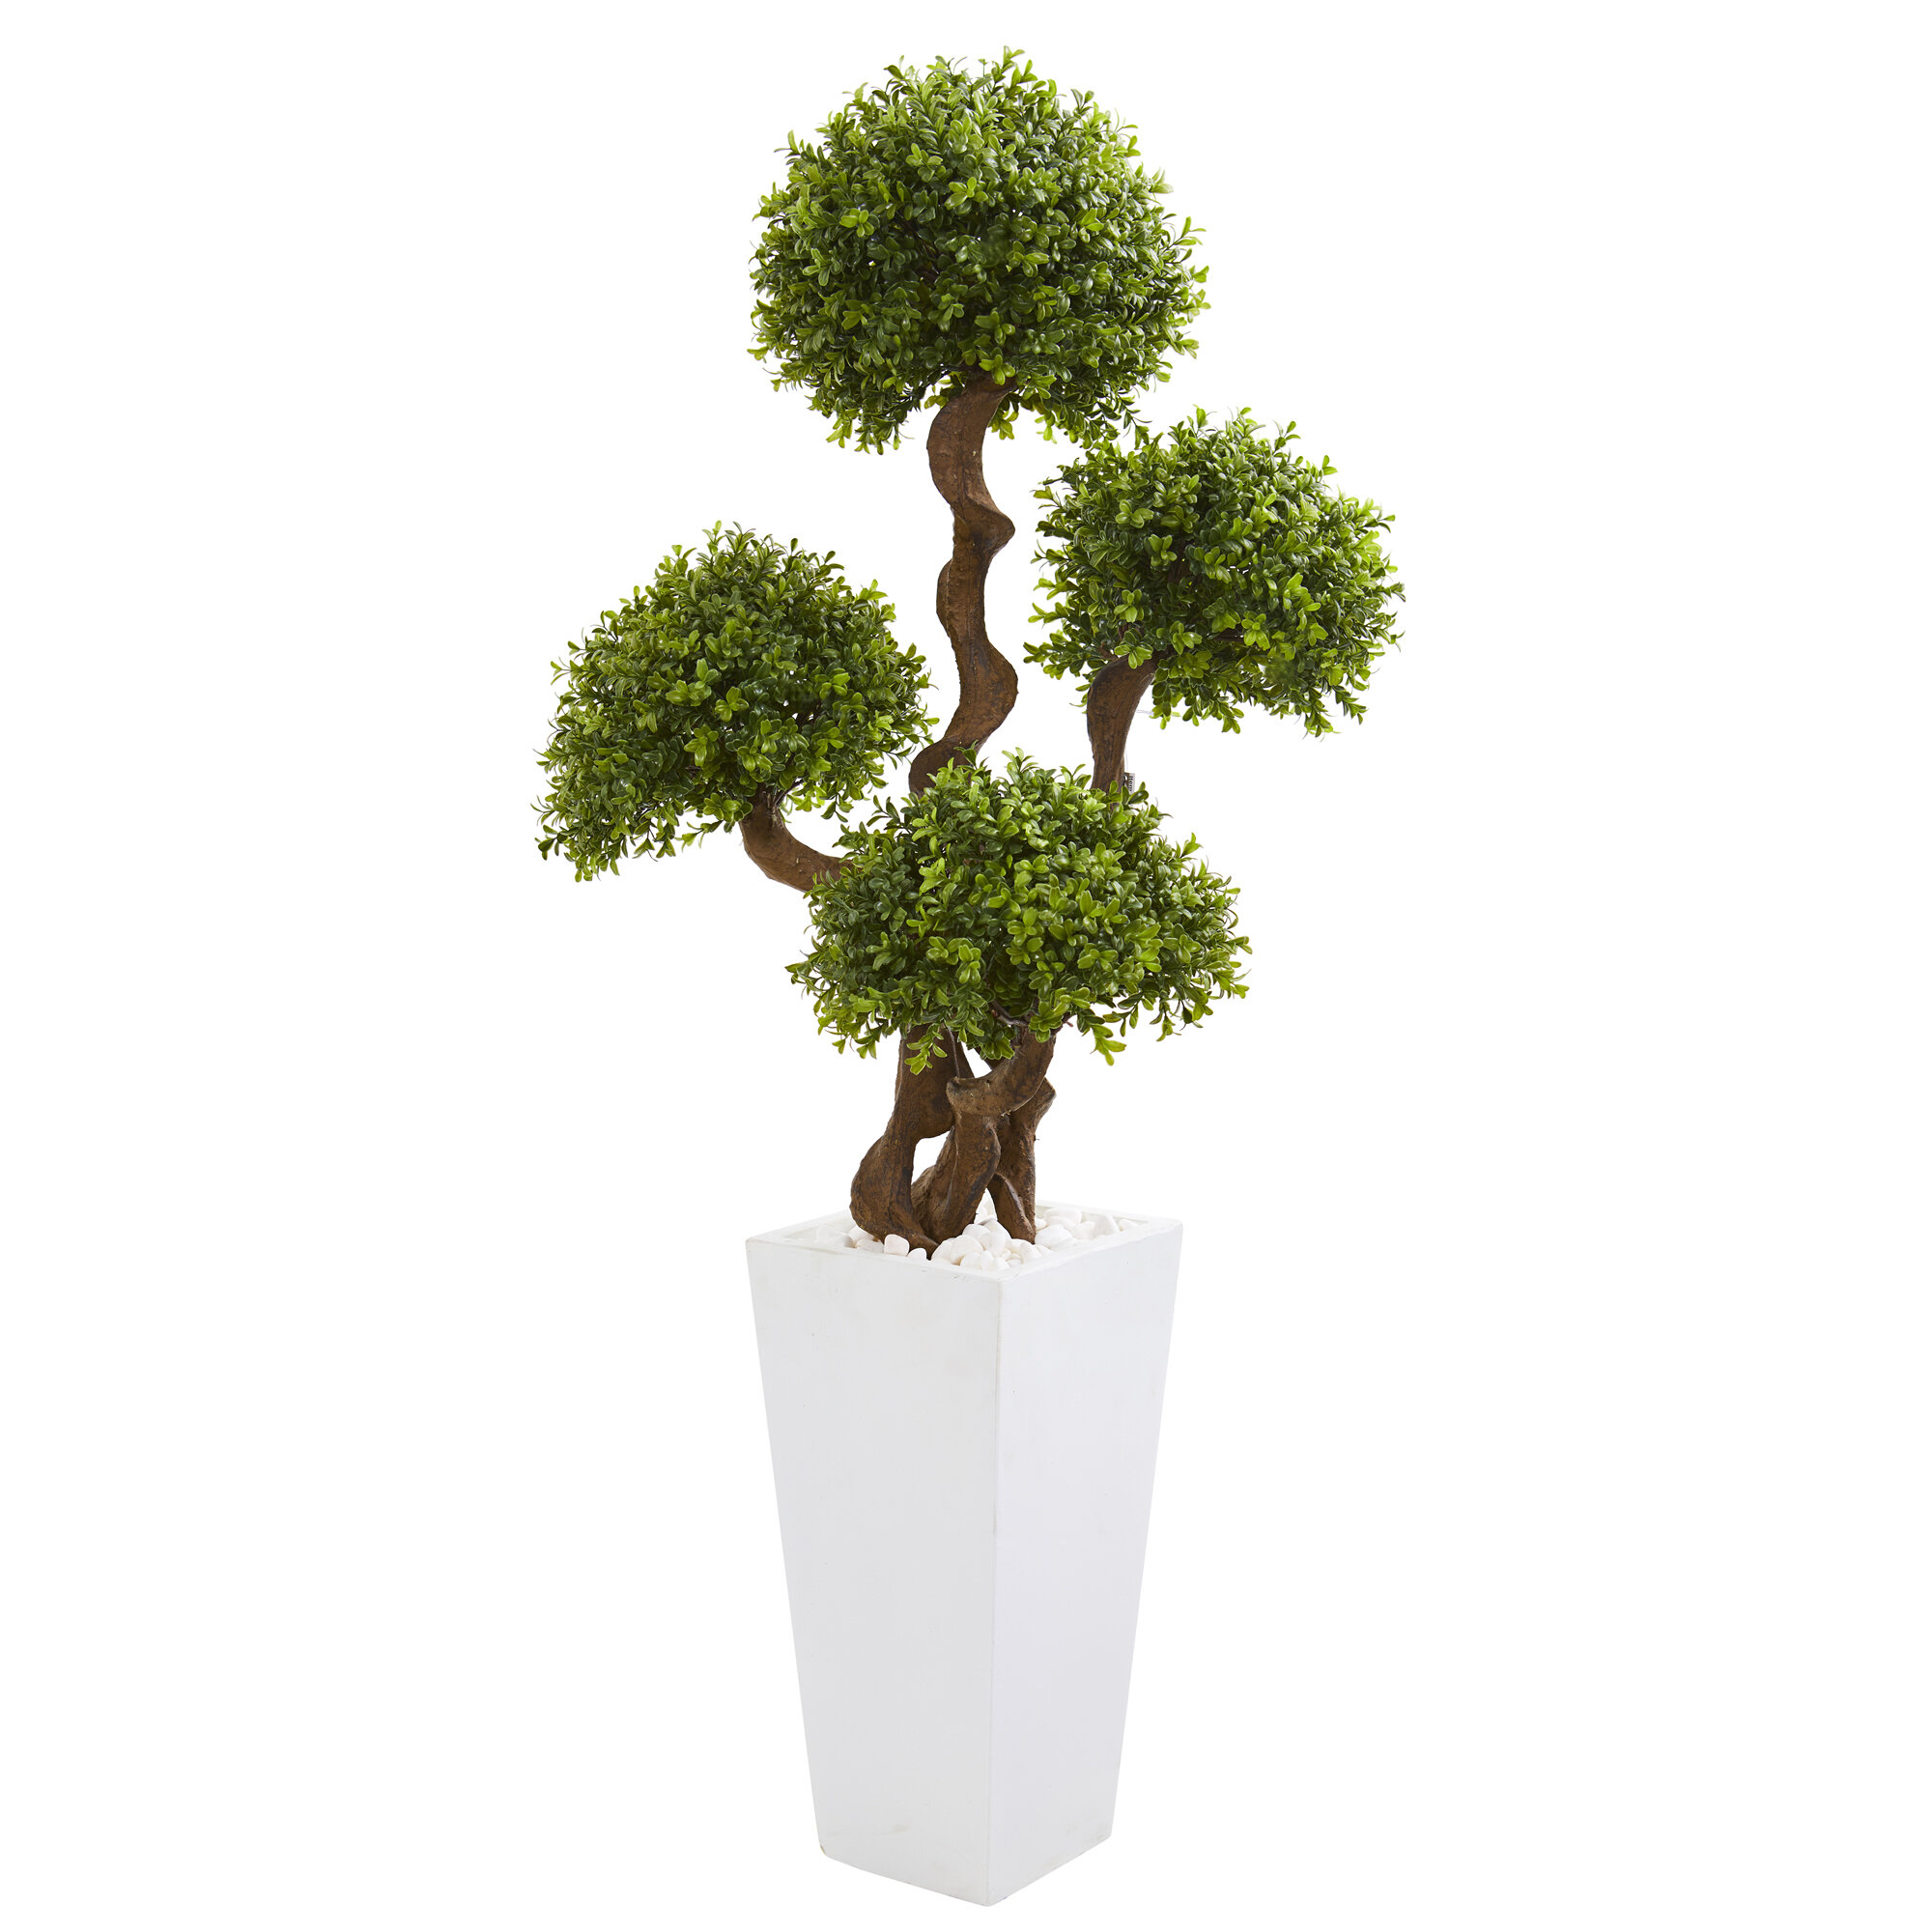 Auear 2 Pack Artificial Boxwood Topiary Plant Balls Decorative For Table Decoration Garden Wedding Decor Artificial Plants Flowers Artificial Shrubs Topiaries